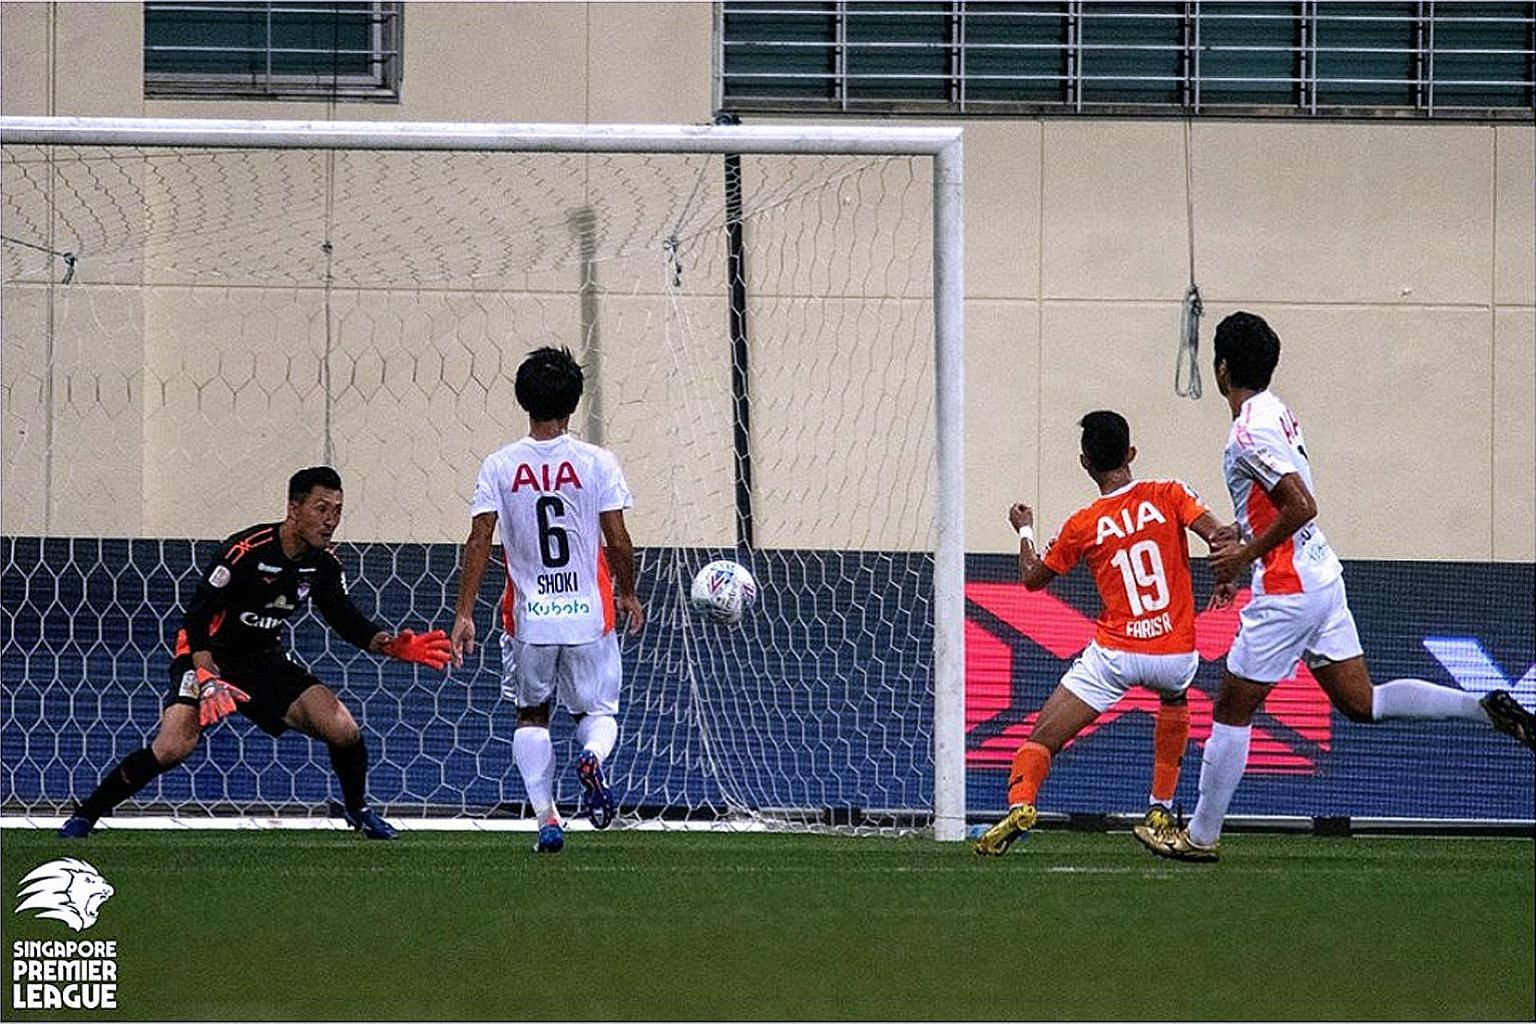 Faris Ramli opening accounts in Hougang's 4-2 win over Albirex Niigata at the Jalan Besar Stadium. The White Swans, last year's unbeaten champions, have been hurt by a rule which requires them to field more local players. PHOTO: FAS